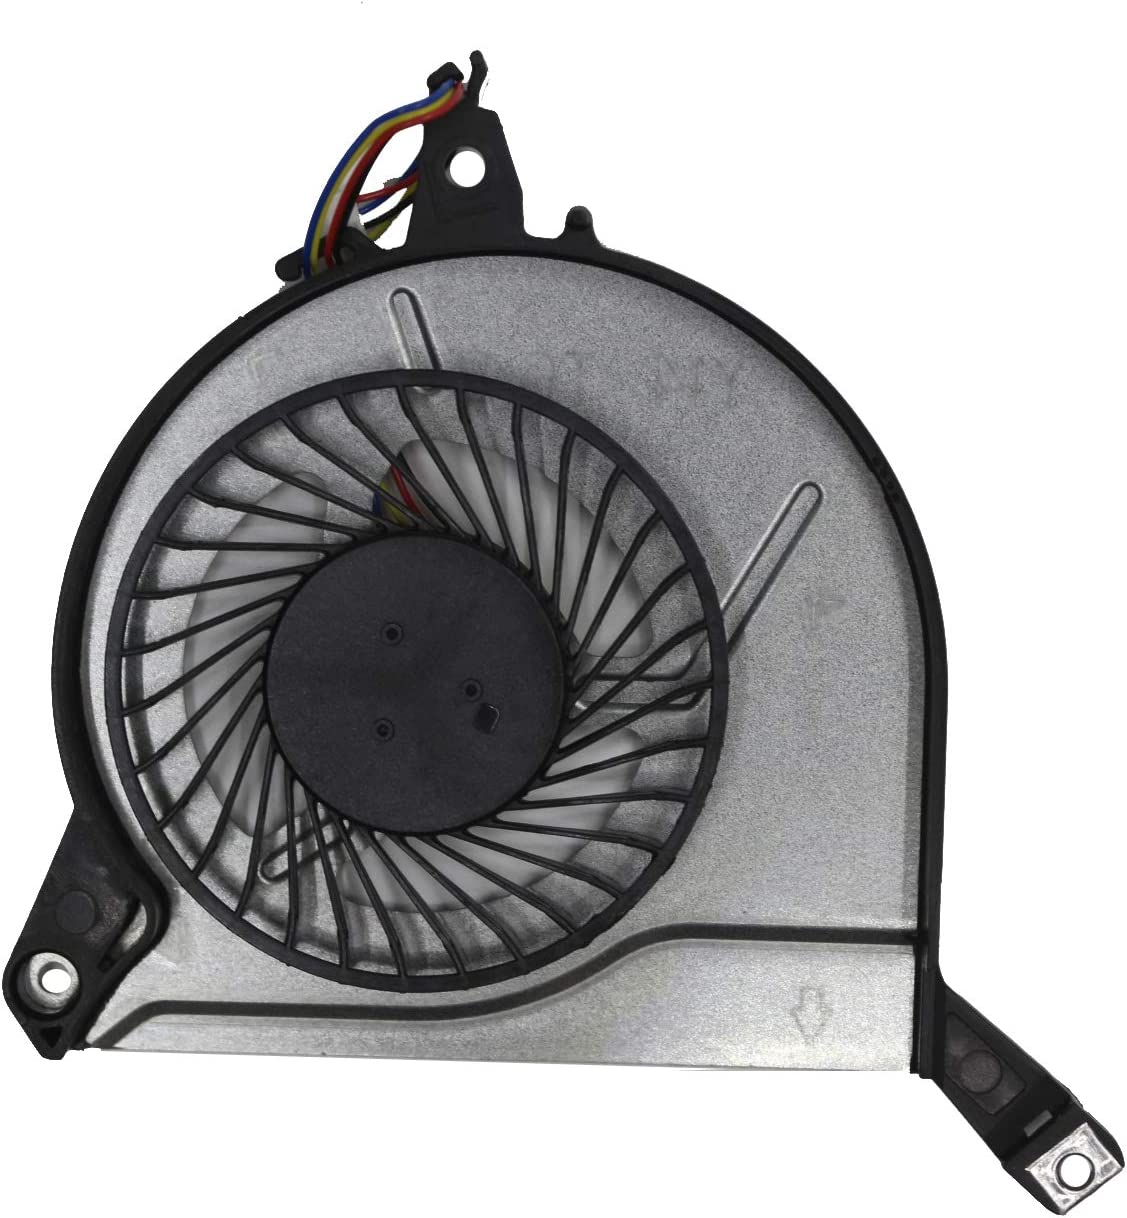 GIVWIZD Laptop Replacement CPU Cooling Fan for HP Envy 17t-k200 17t-k300 CTO